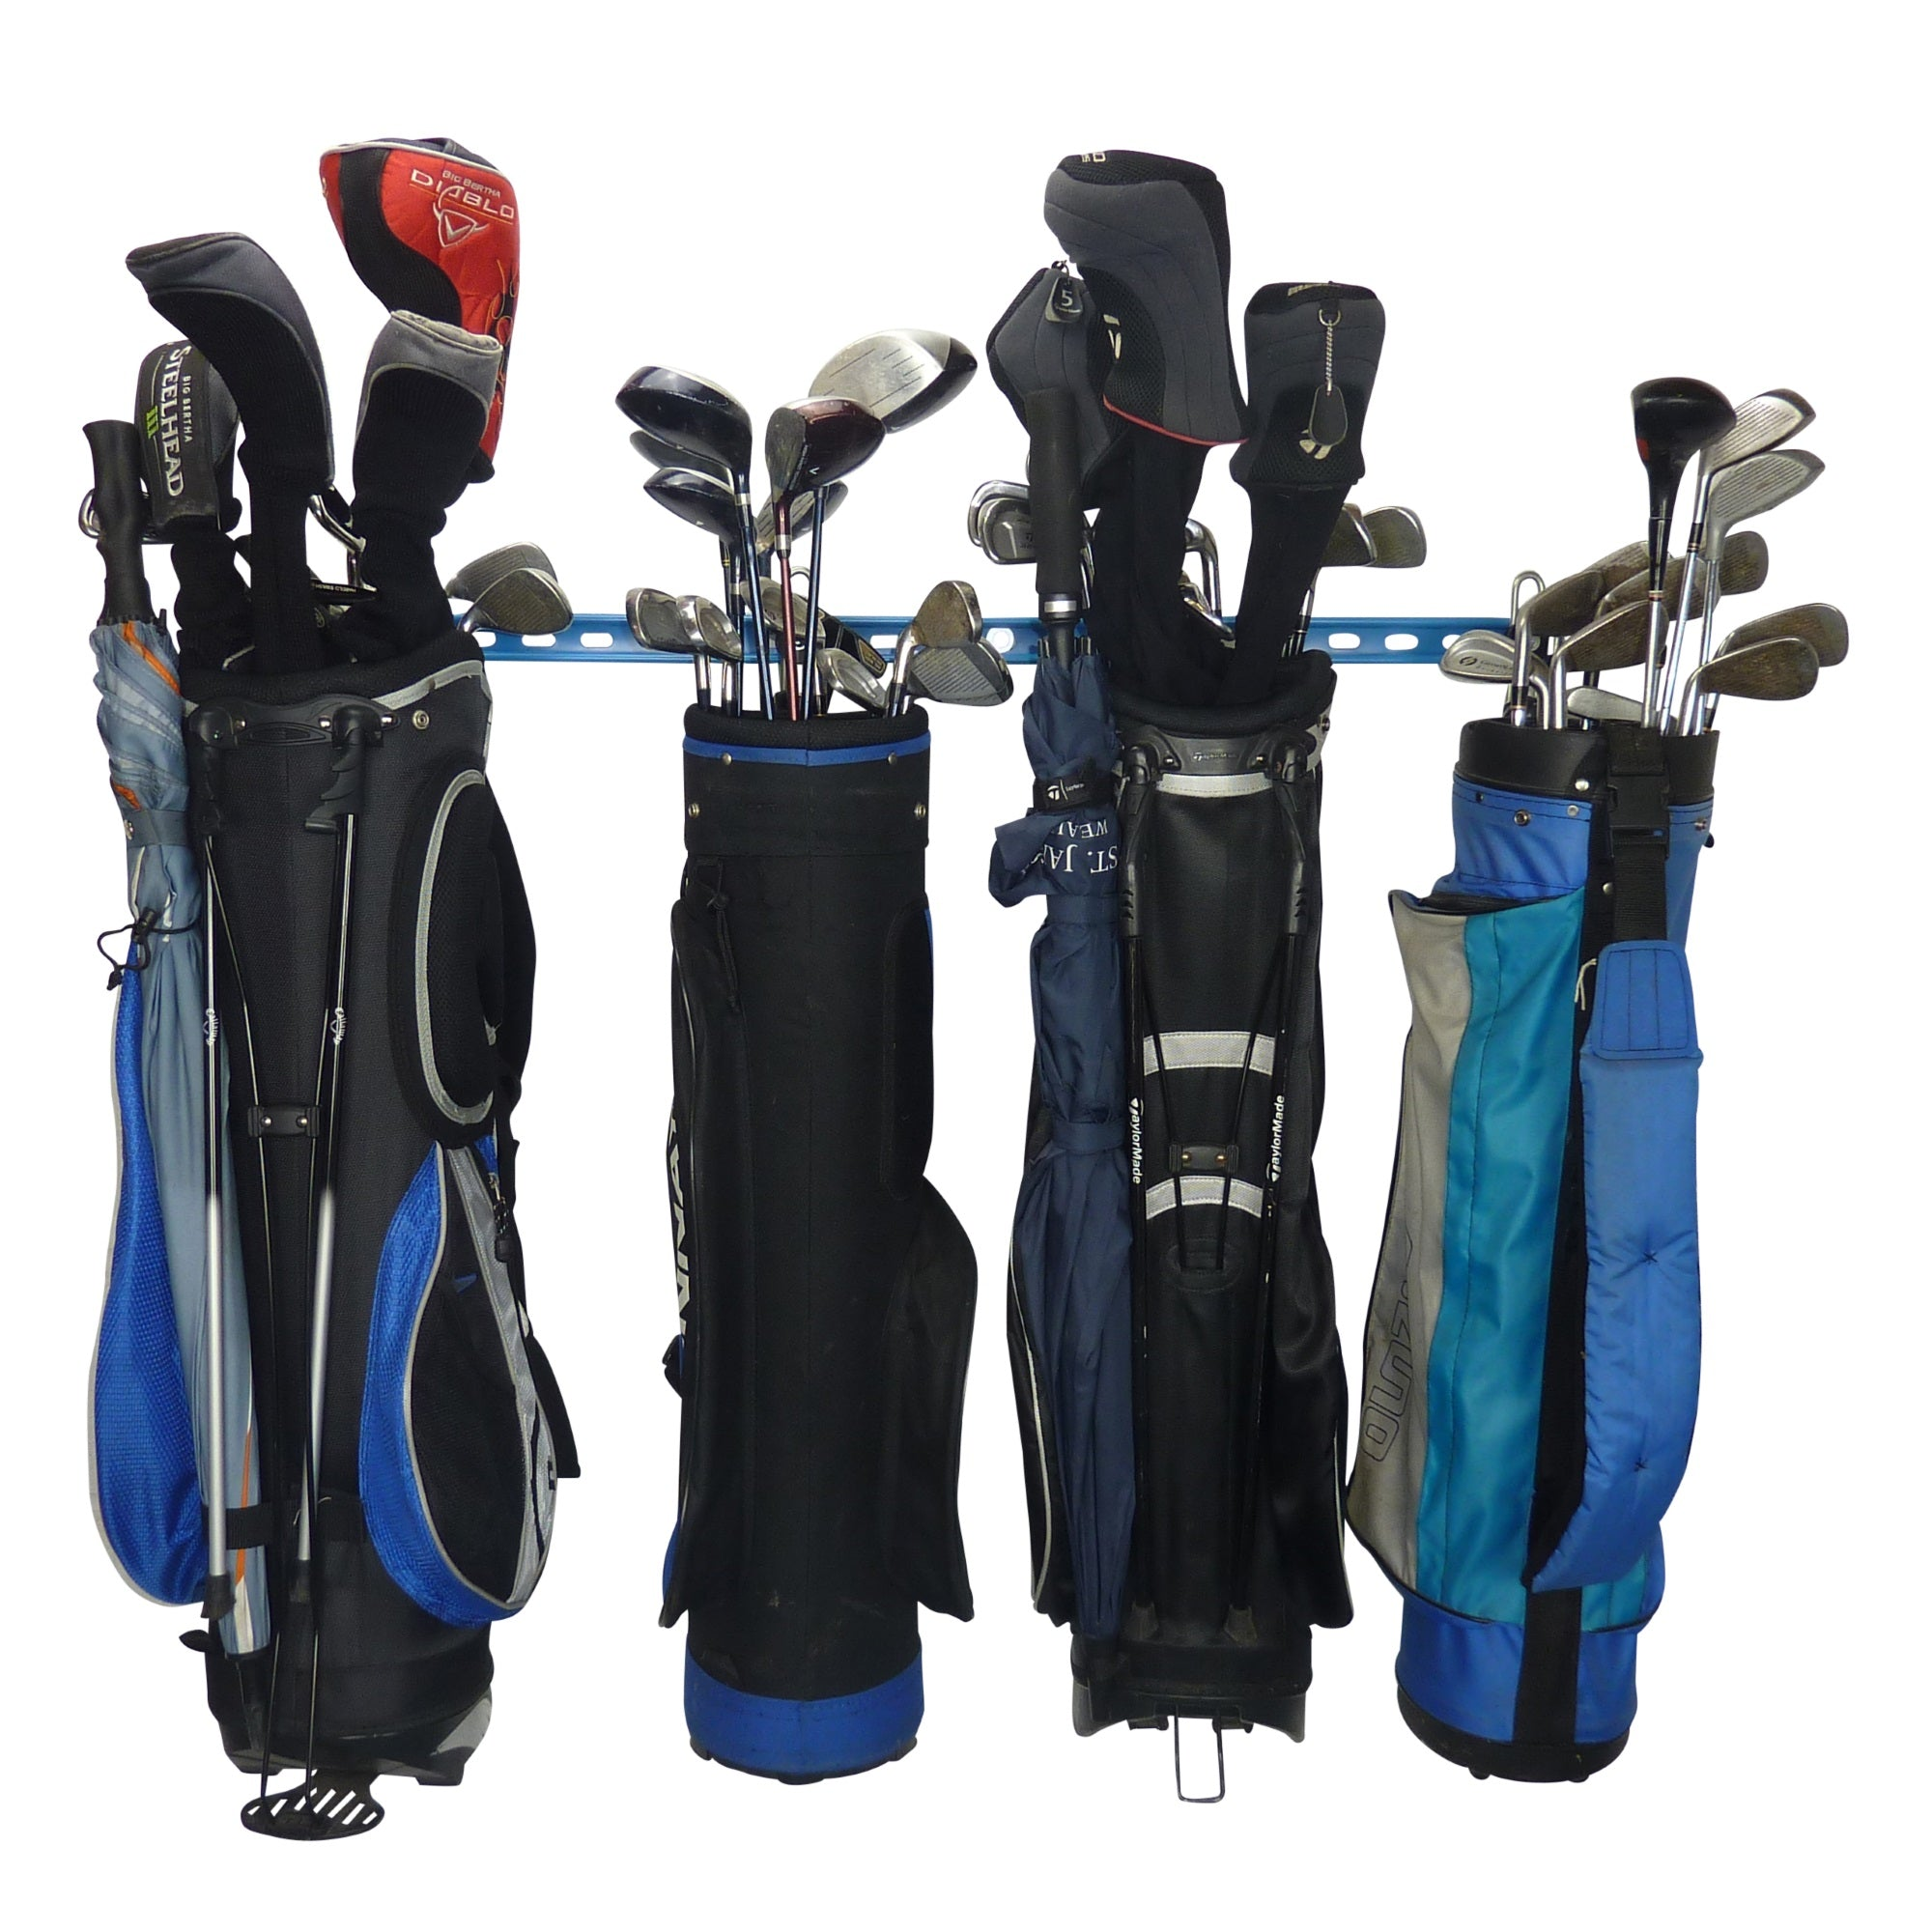 Golf equipment wall storage. Golf bag wall storage. Golf club wall storage